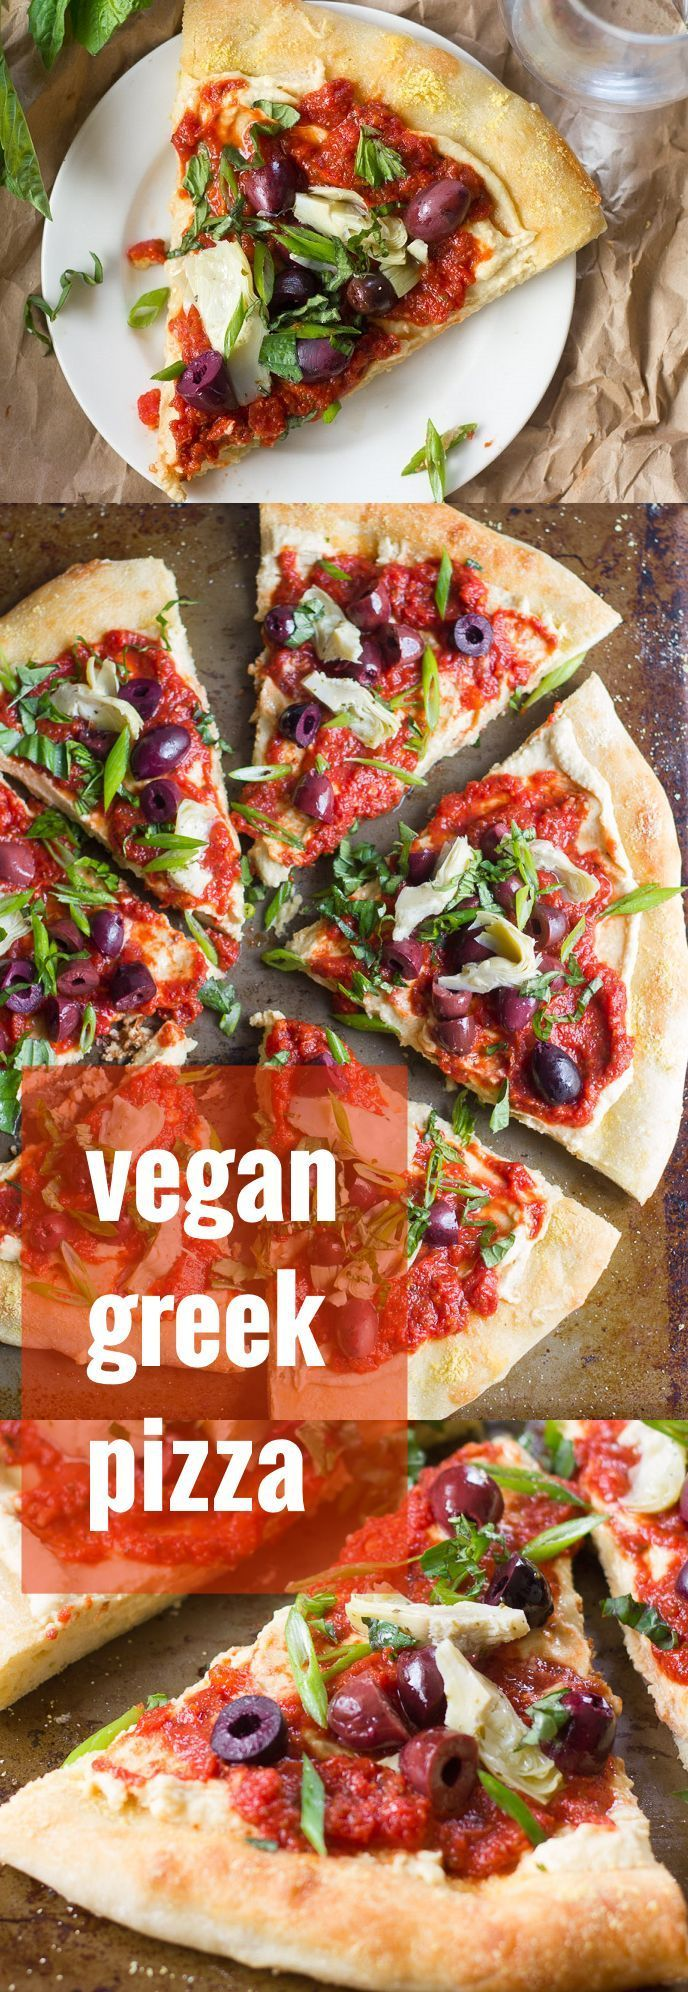 Hummus and tomato sauce are slathered onto a thick crust and piled with Kalamata olives, artichoke hearts and fresh herbs to create this flavor-packed vegan Greek-inspired pizza.